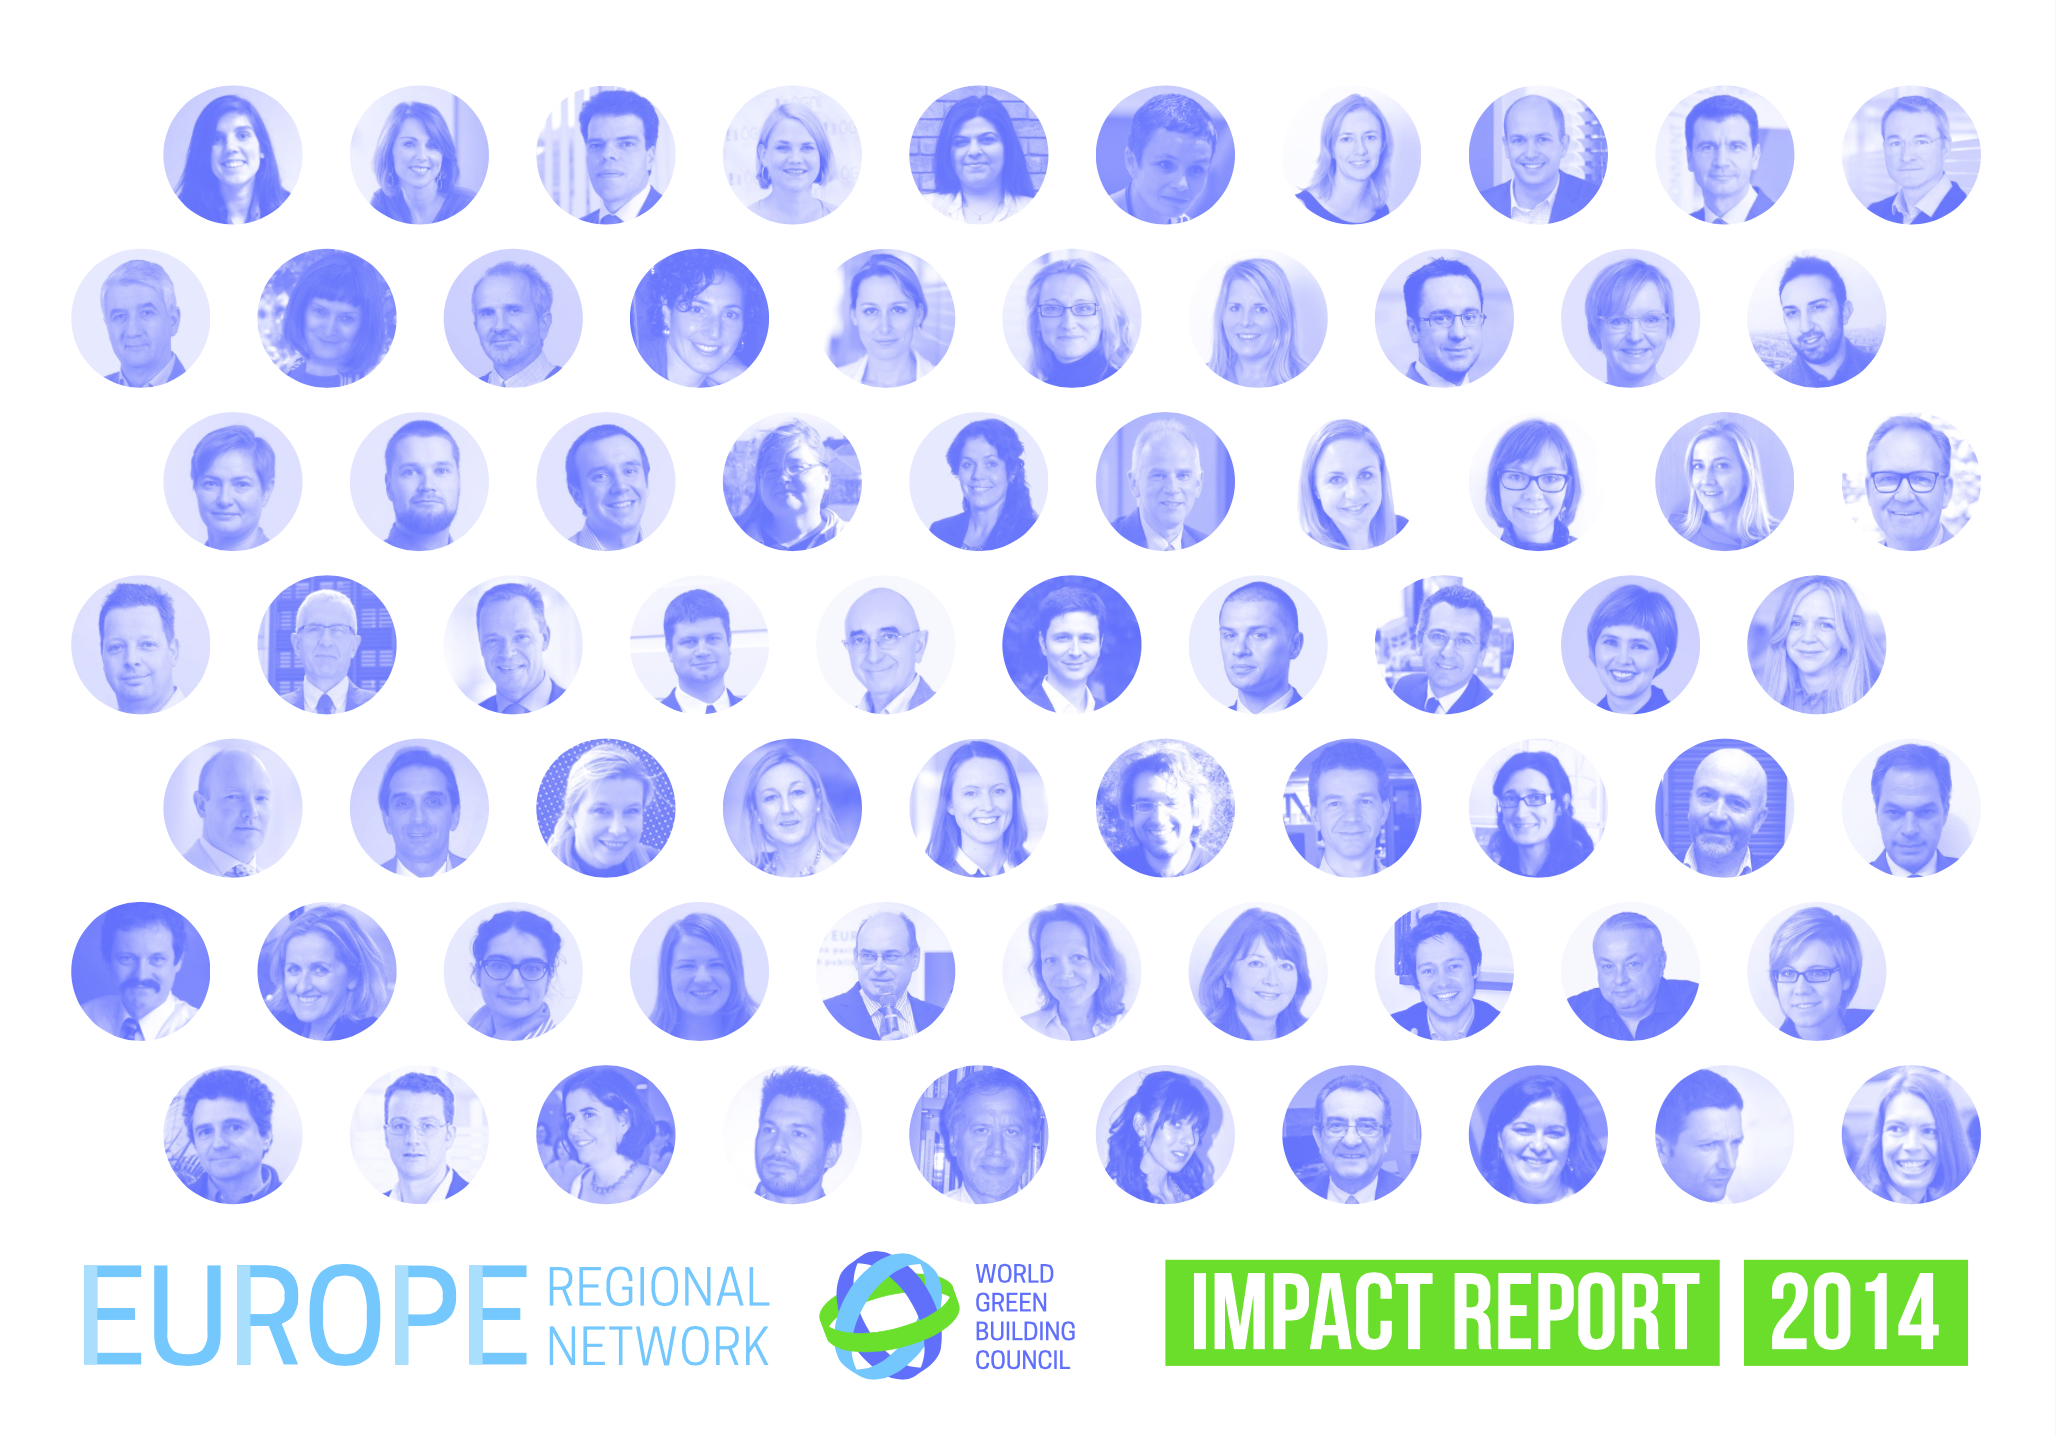 Europe Regional Network Impact Report 2014 World Green Building